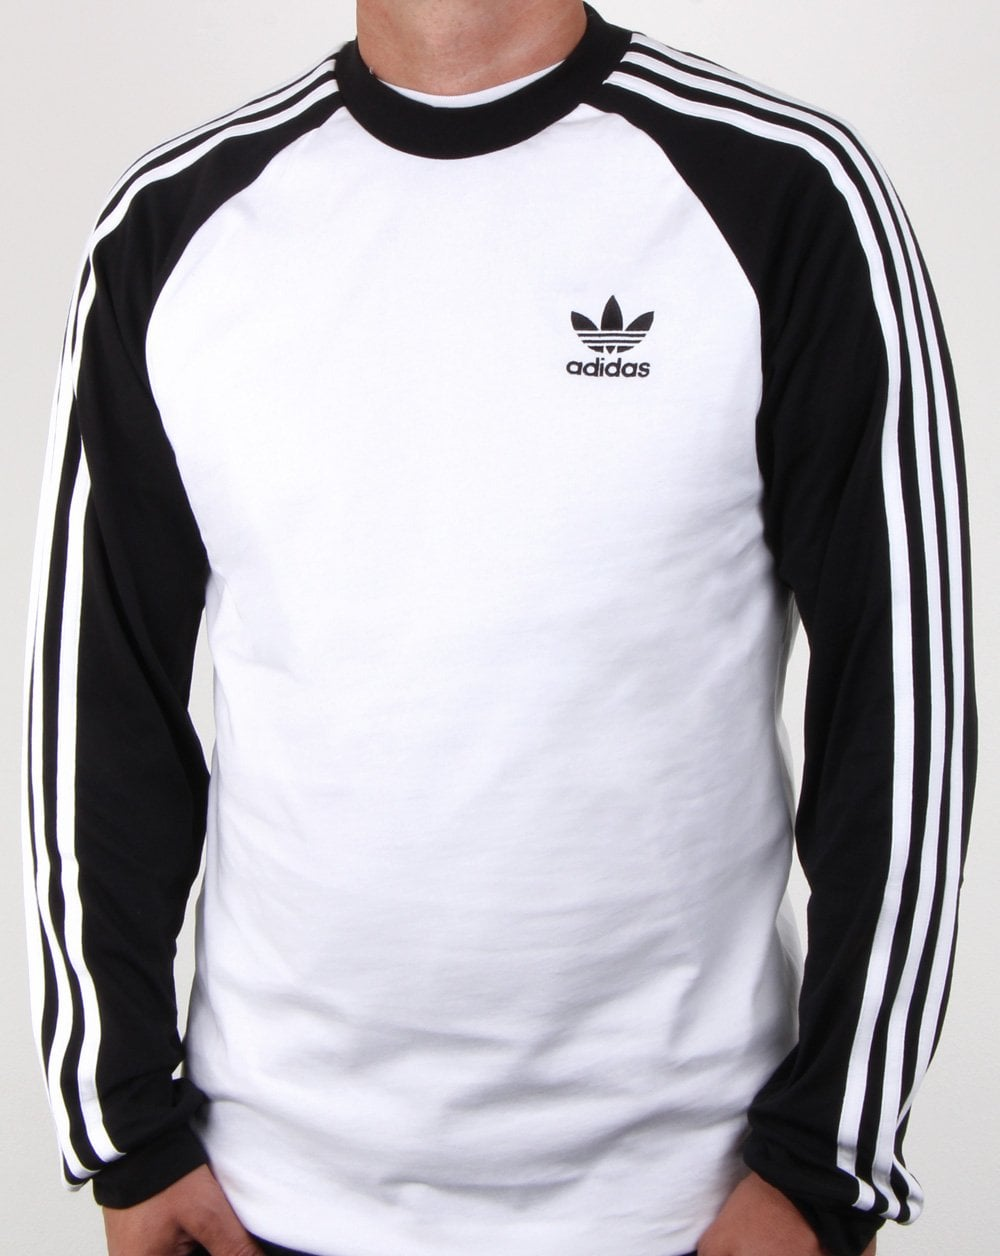 c07555ae74 adidas Originals Adidas Originals 3 Stripes Long Sleeve T Shirt White/black